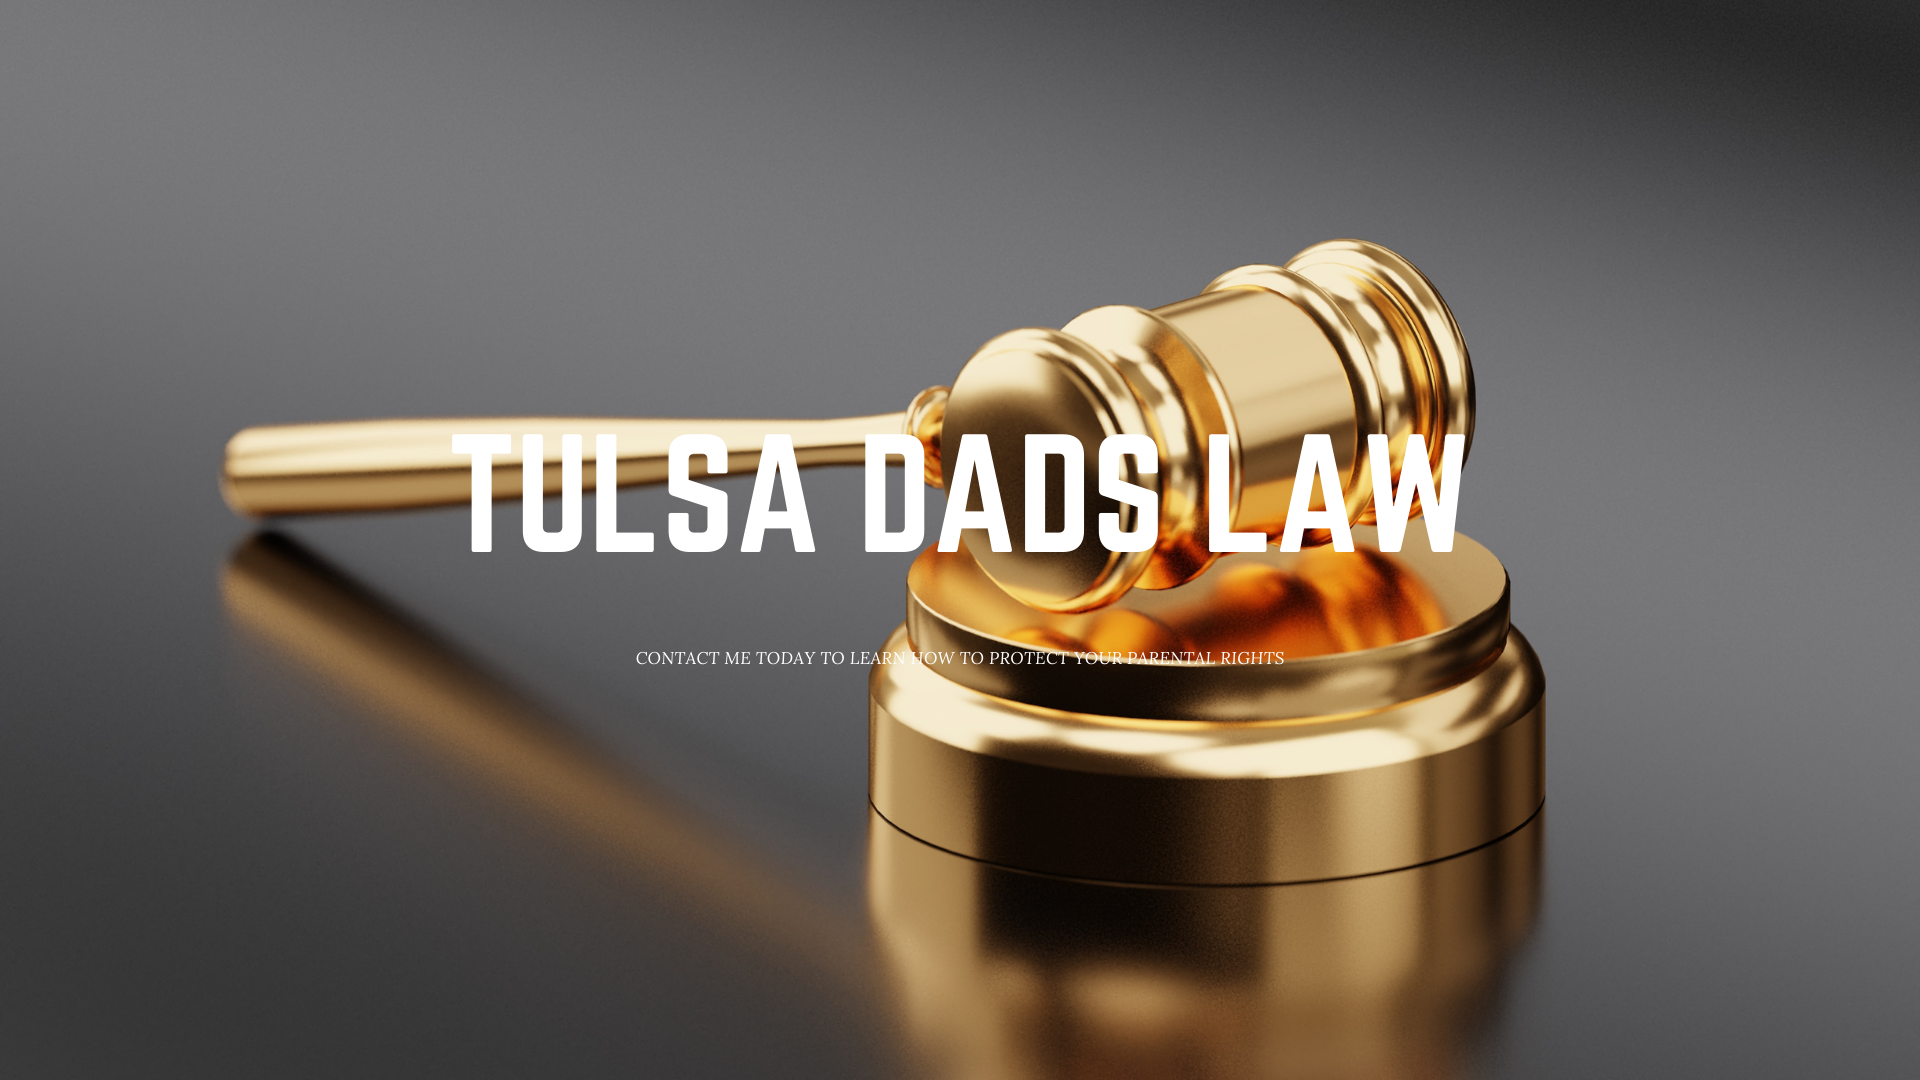 Tulsa Dads Law